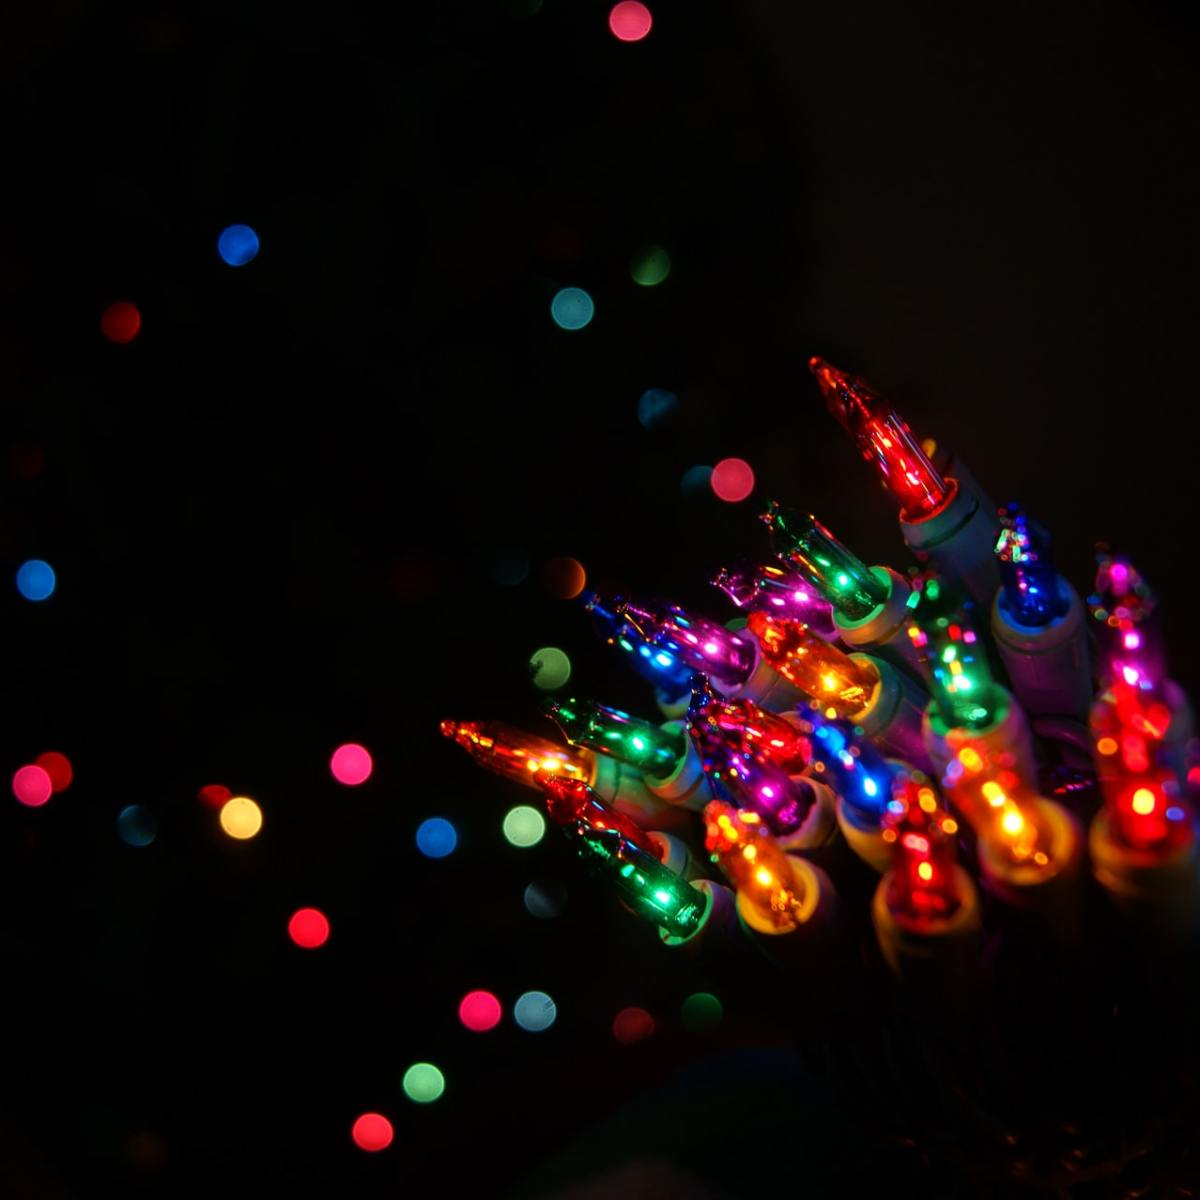 A cluster of multicolored Christmas lights shine in the darkness.